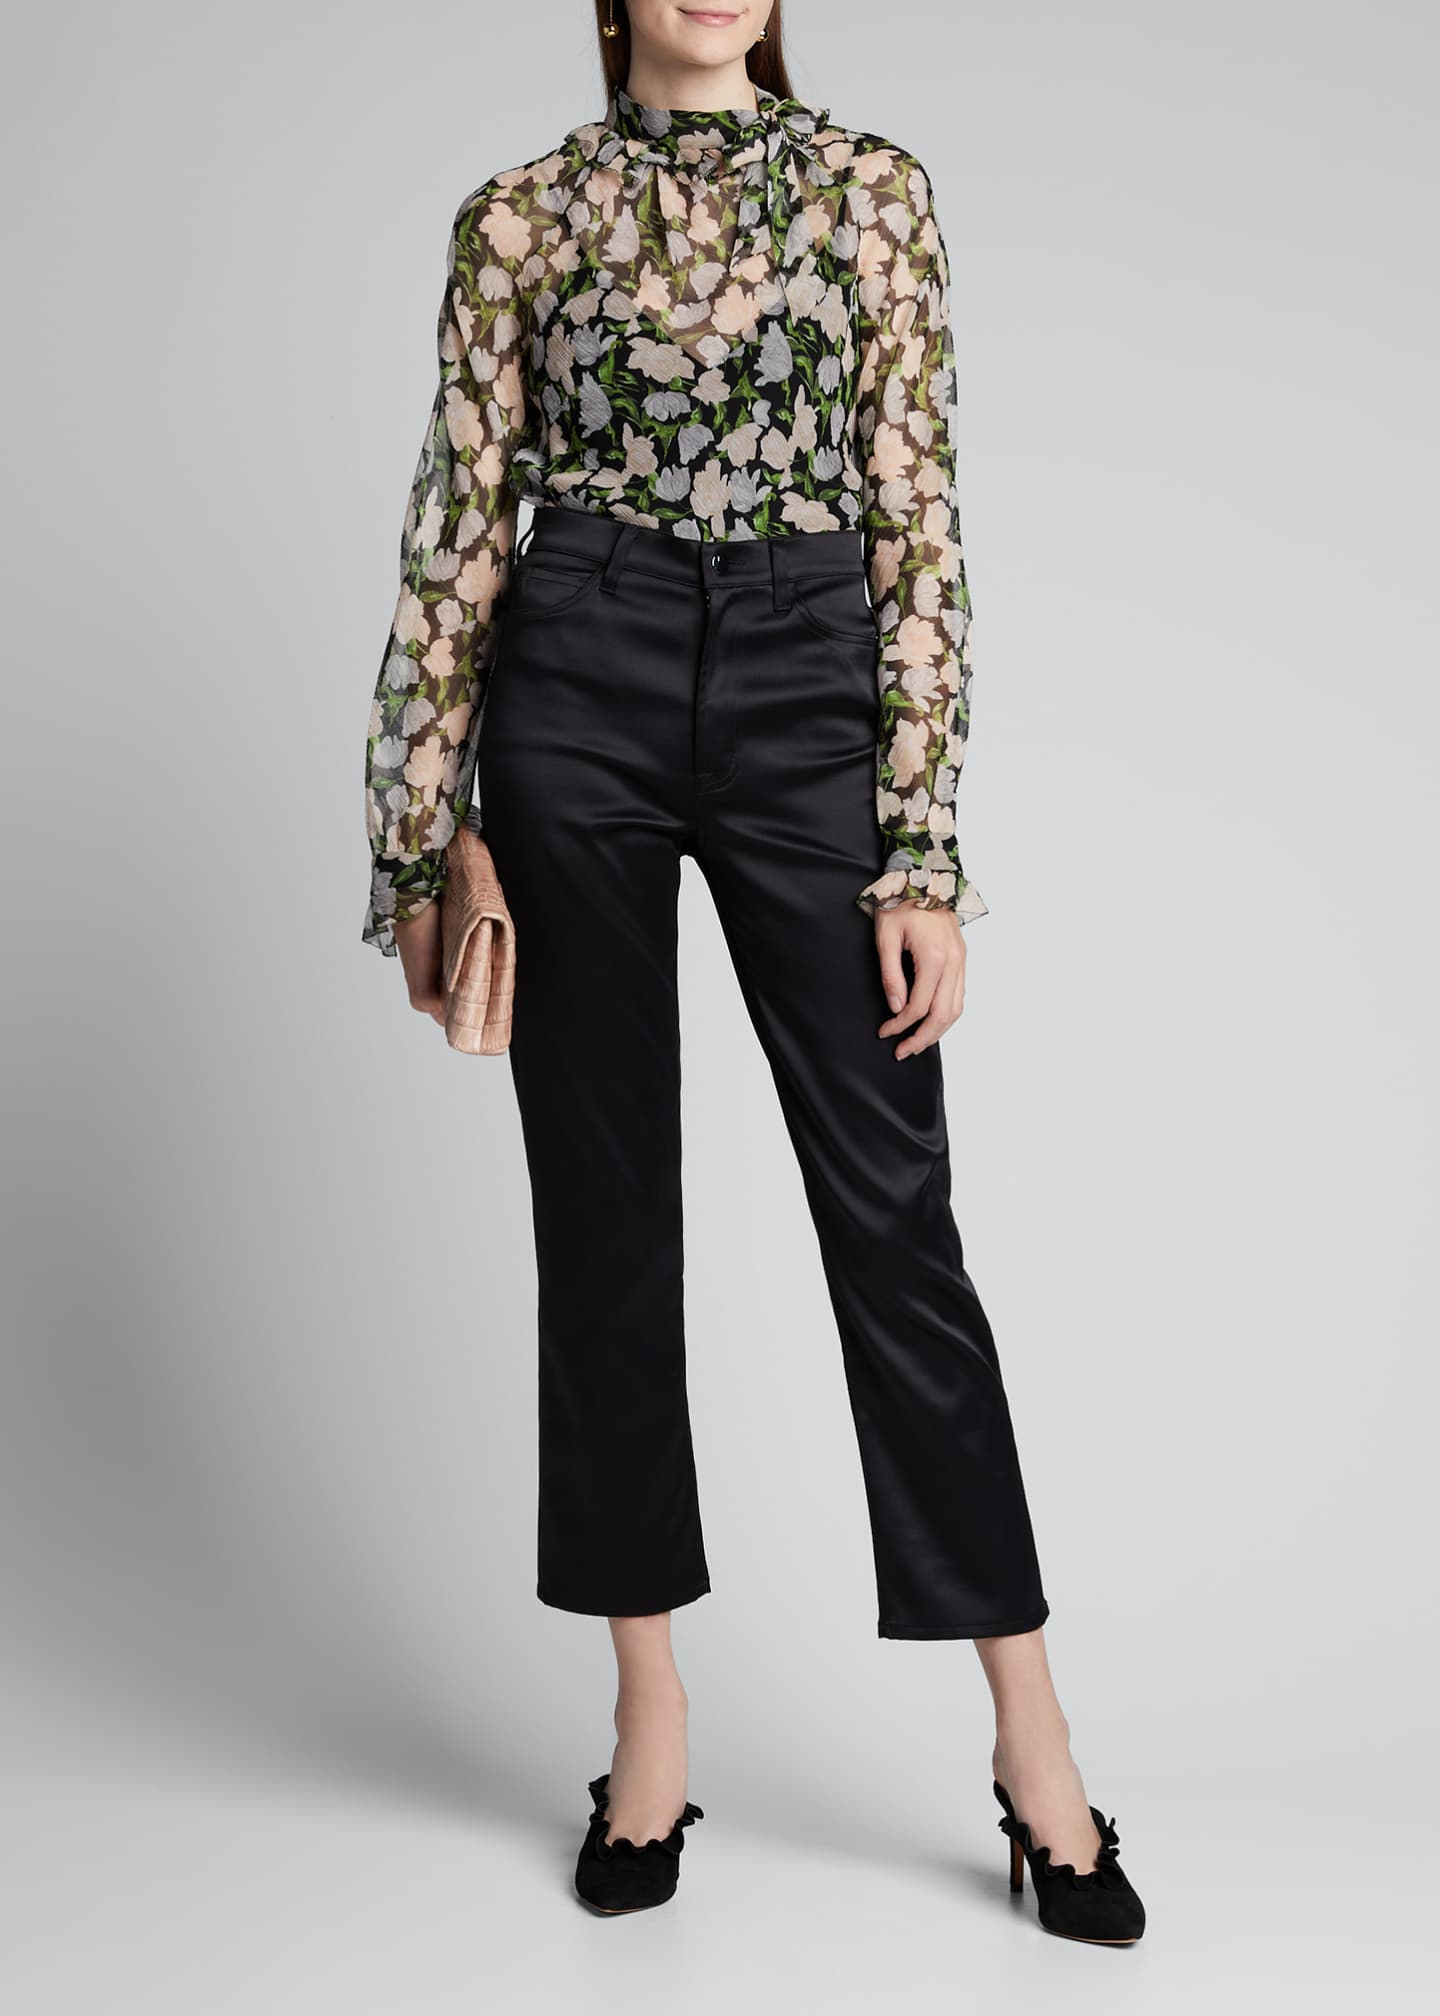 Jason Wu Collection Floral-Print Crinkled Chiffon Tie-Neck Blouse